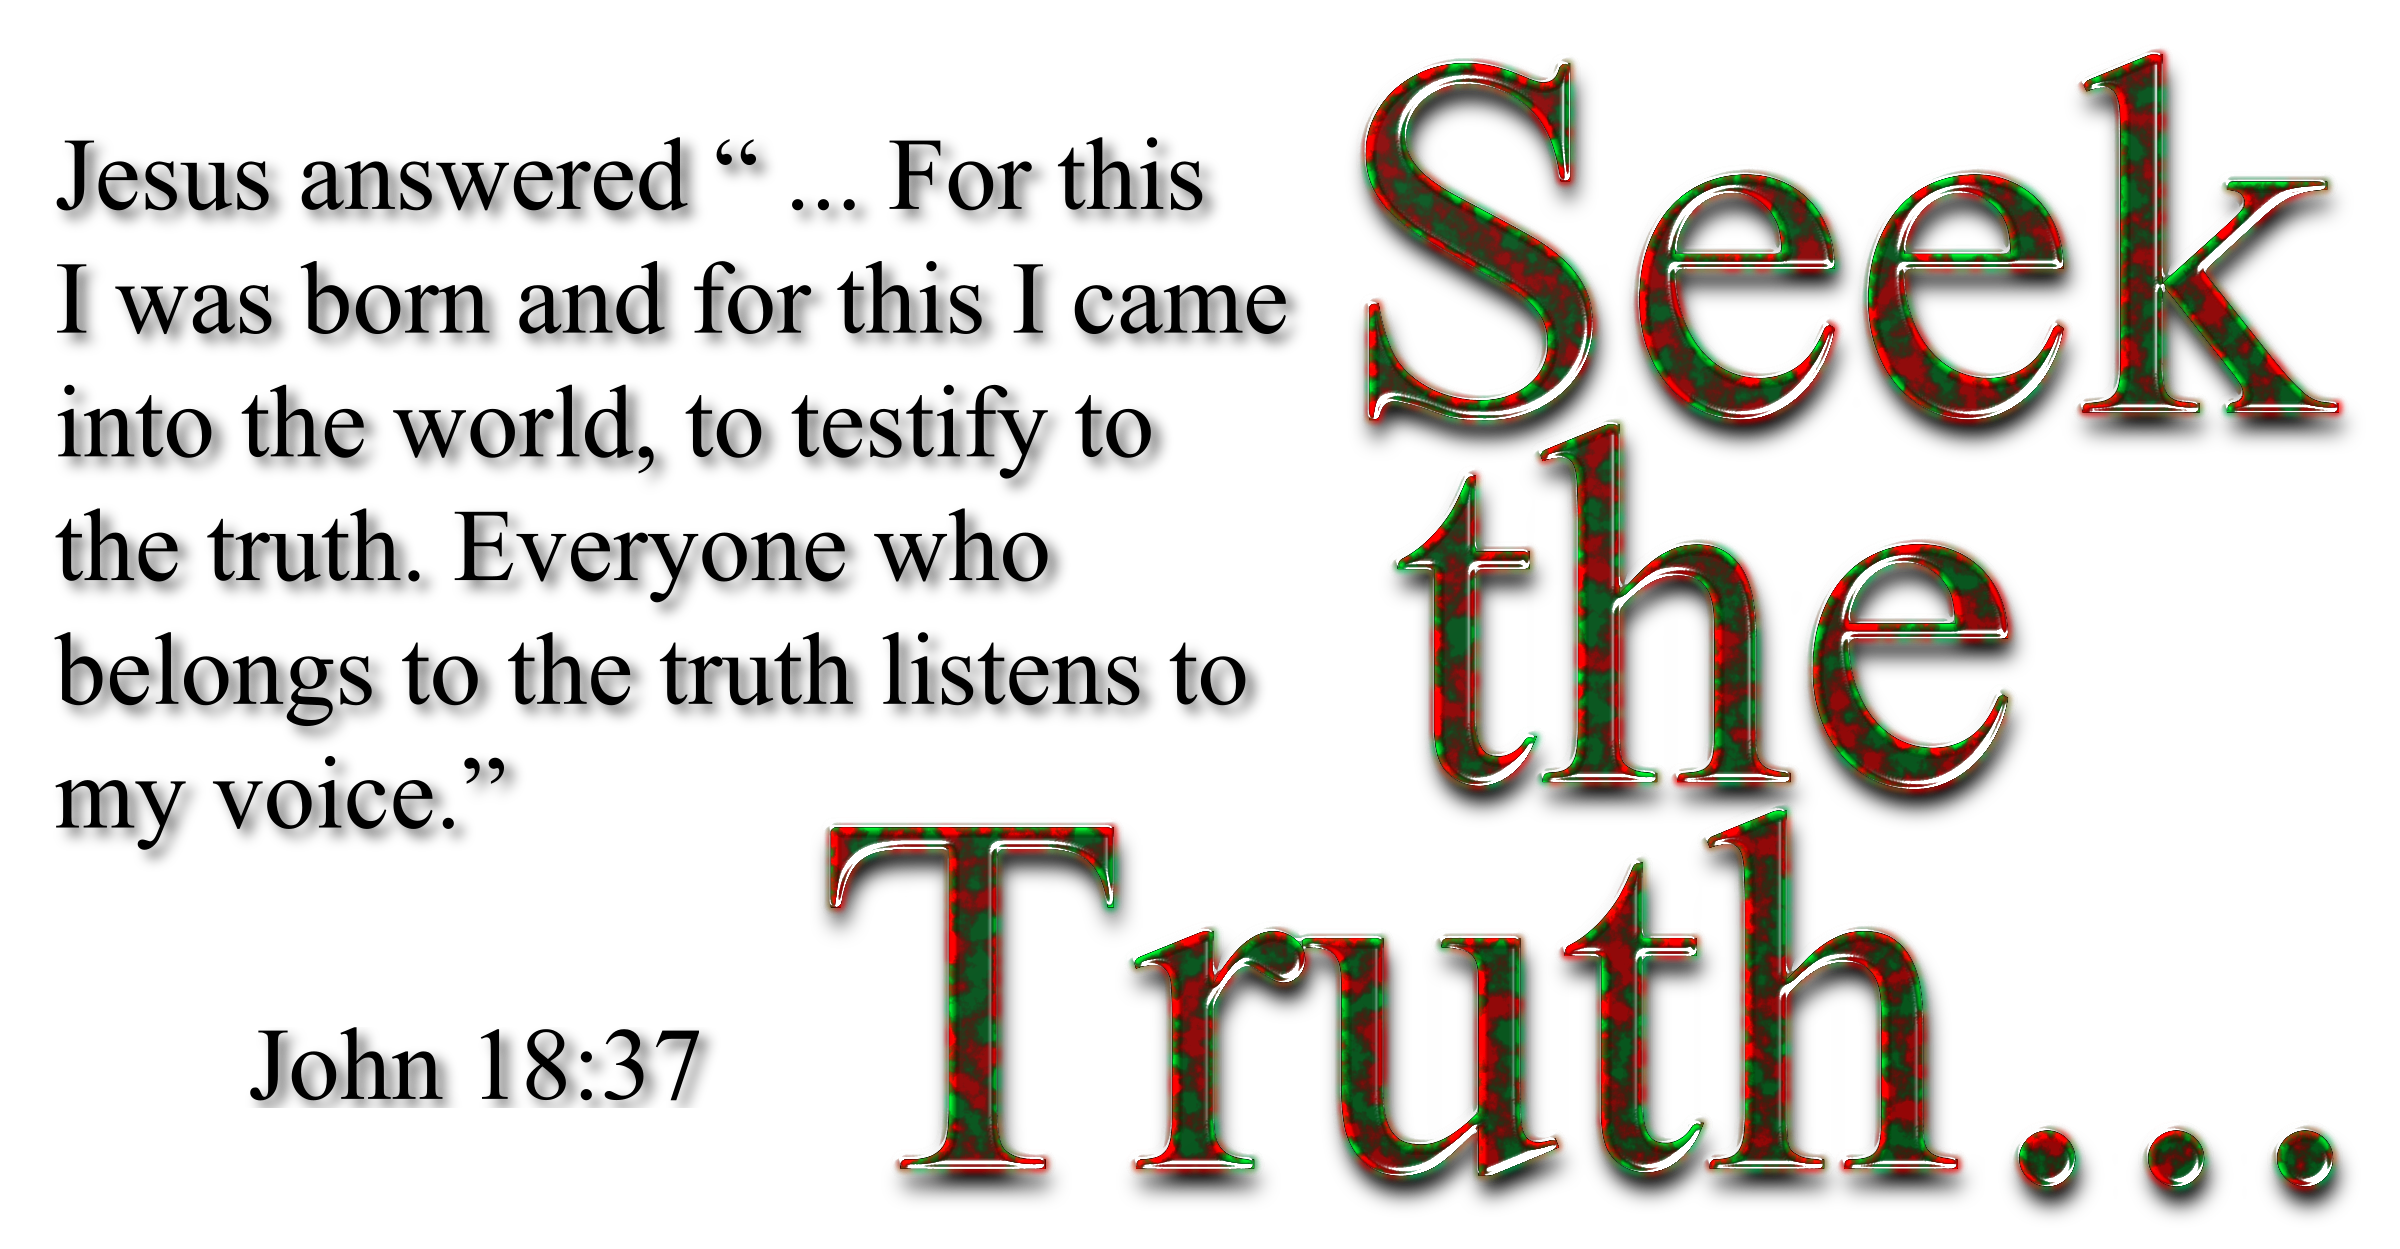 Justice clipart truth. Seek the icons png